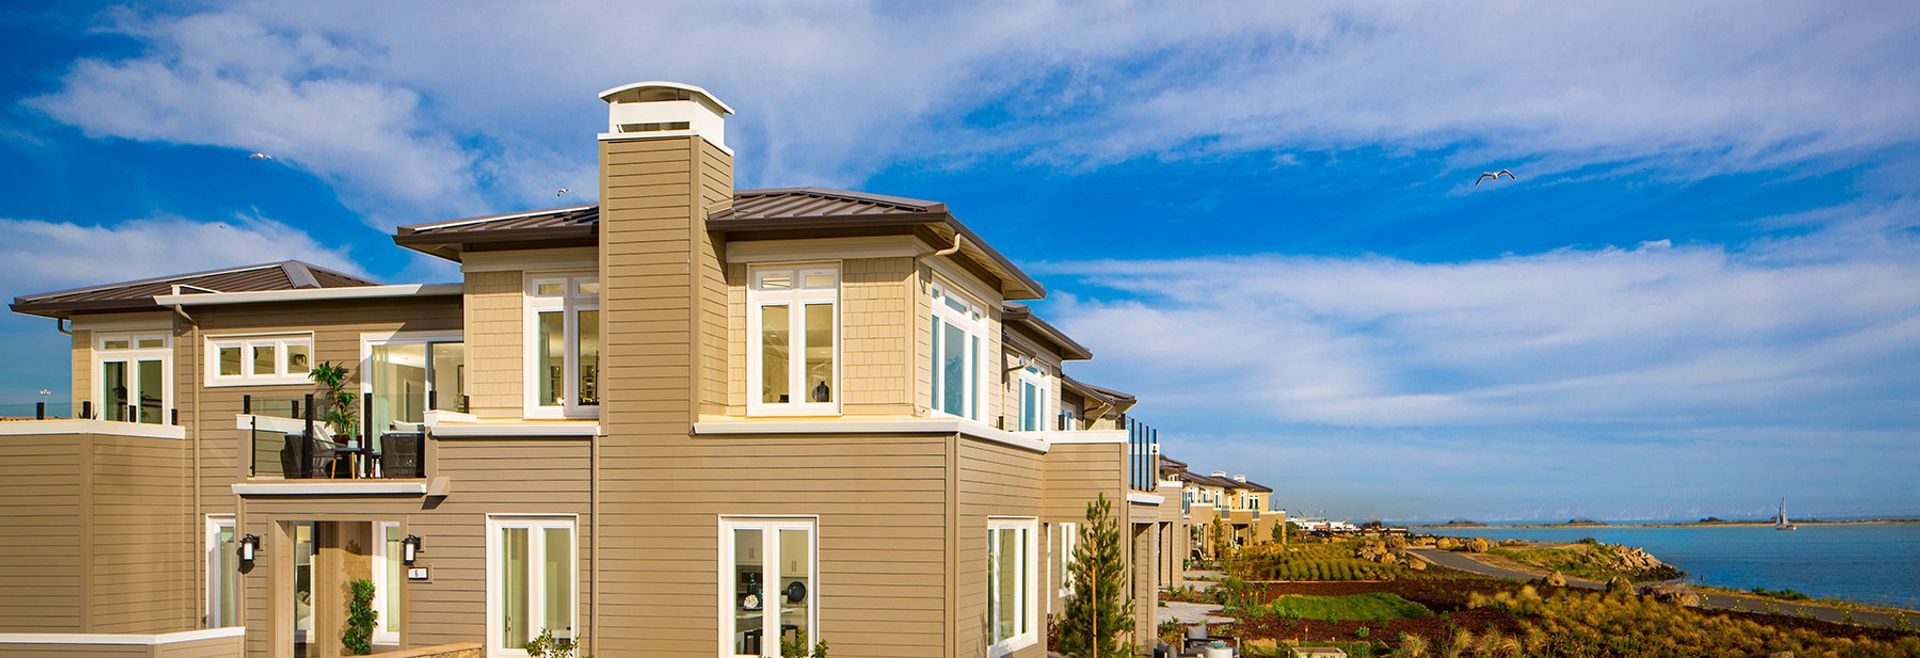 'Waterline' by Shea Homes - Family-Northern California in Oakland-Alameda